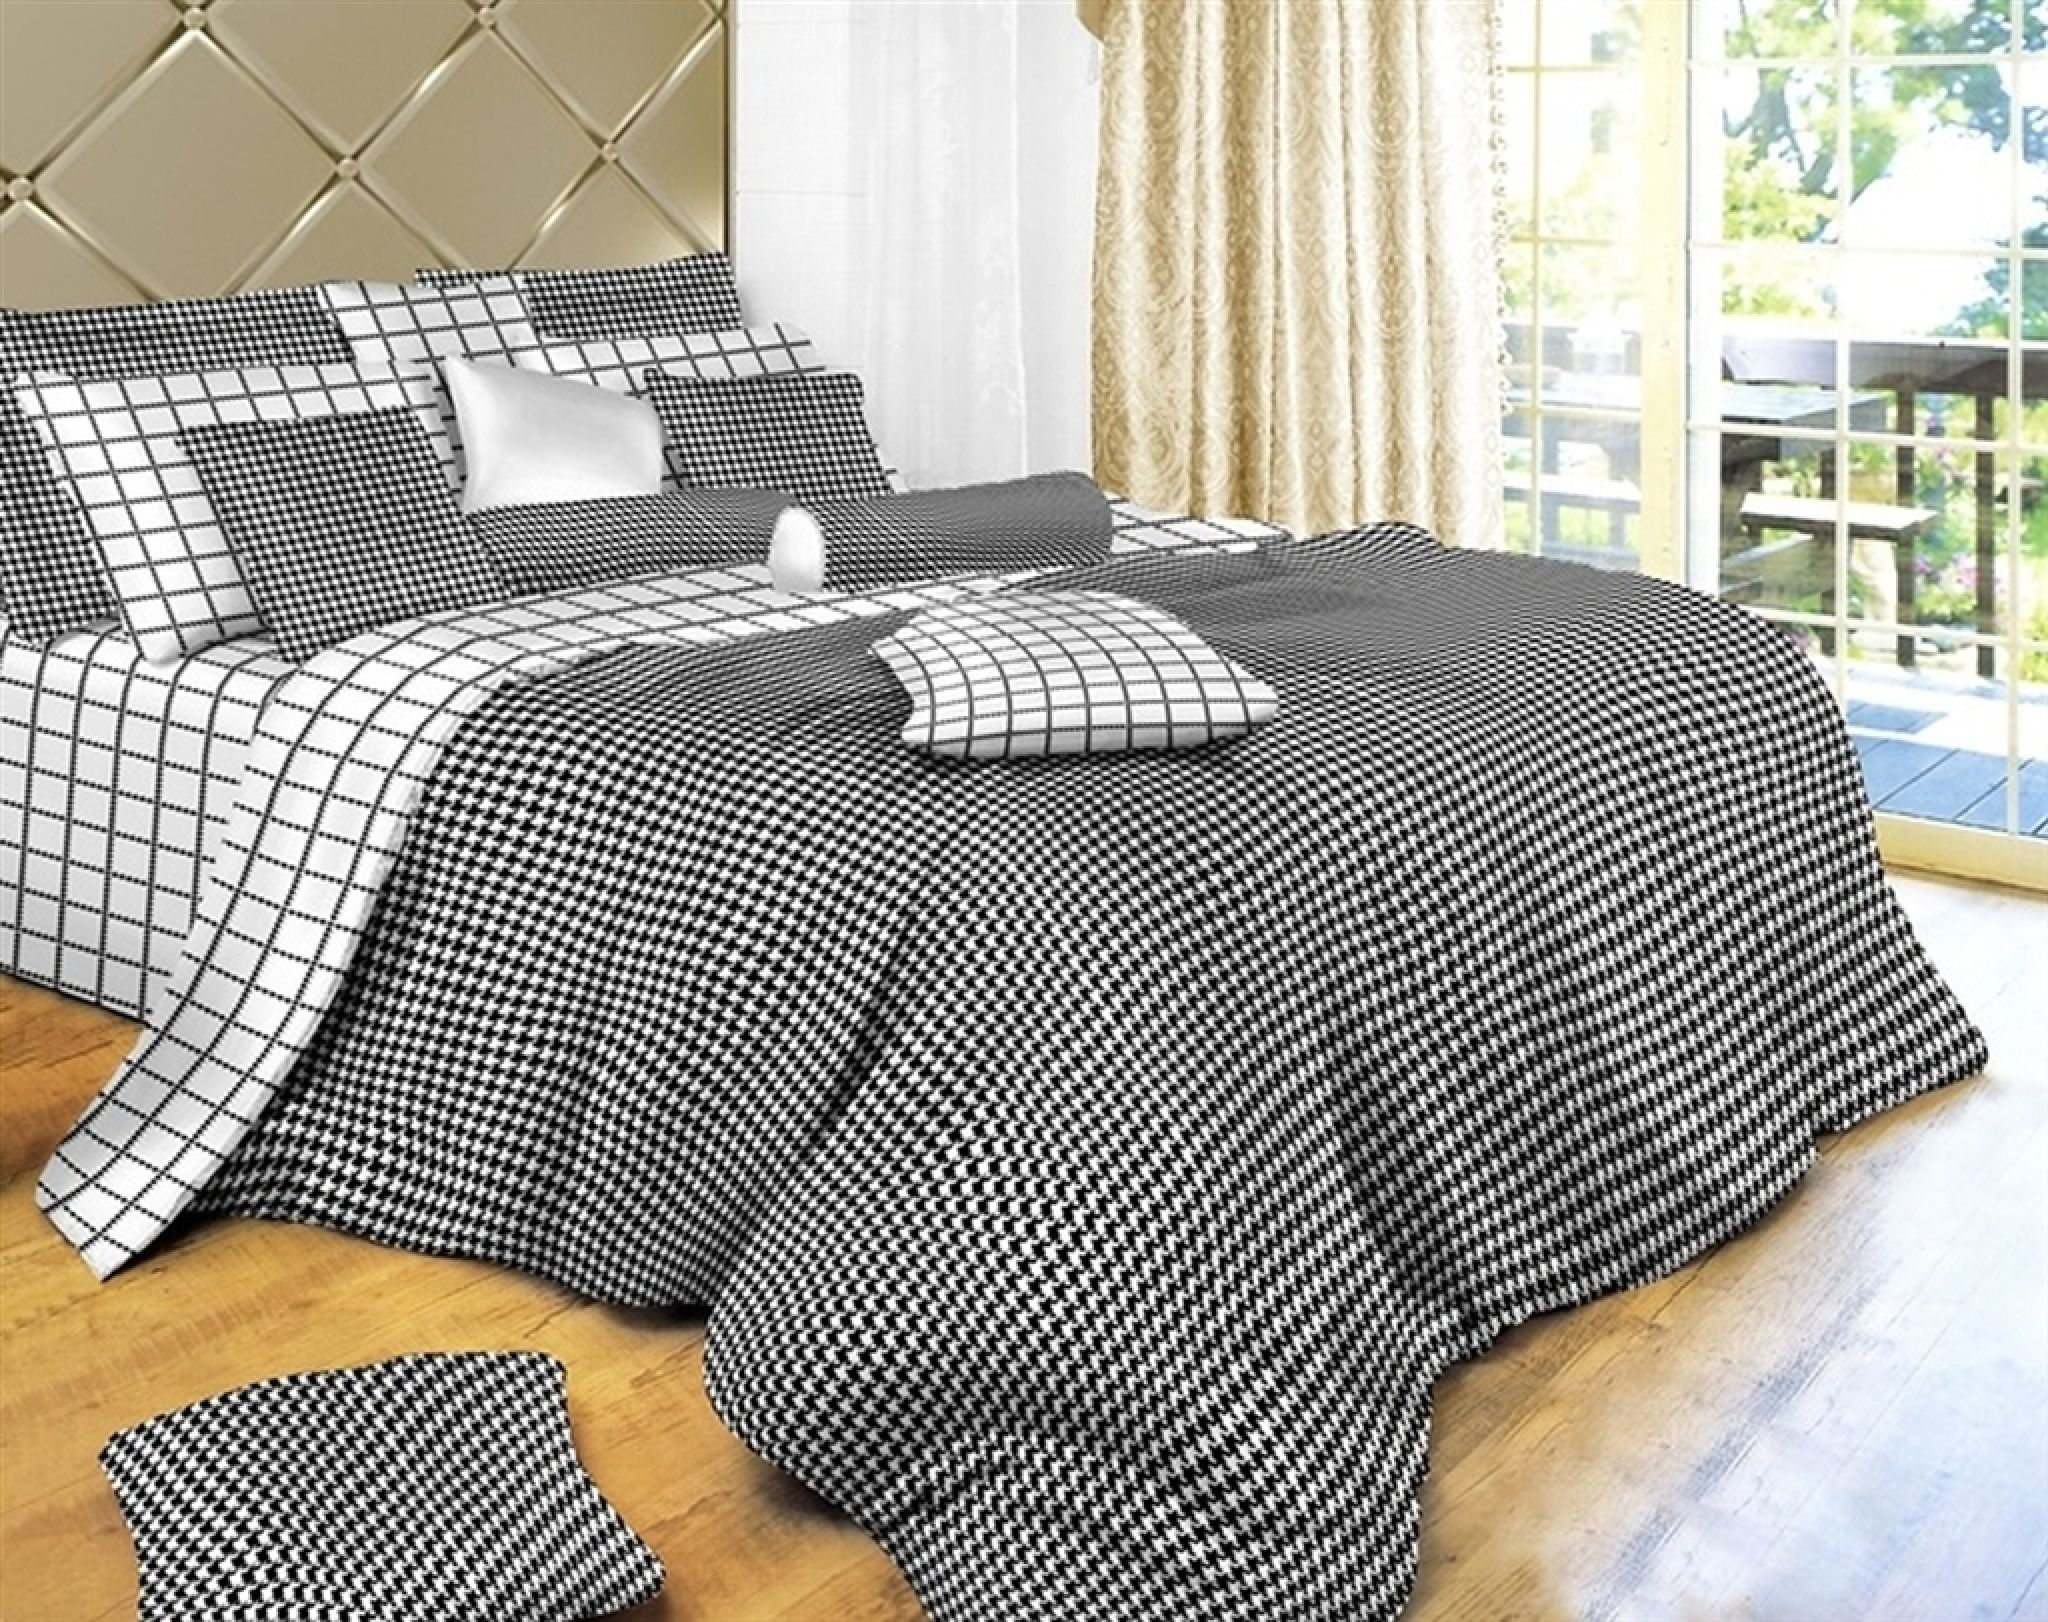 Dorm Room Comforters Twin Xl   Best Interior Paint Brand Check More At  Http:/ Part 52